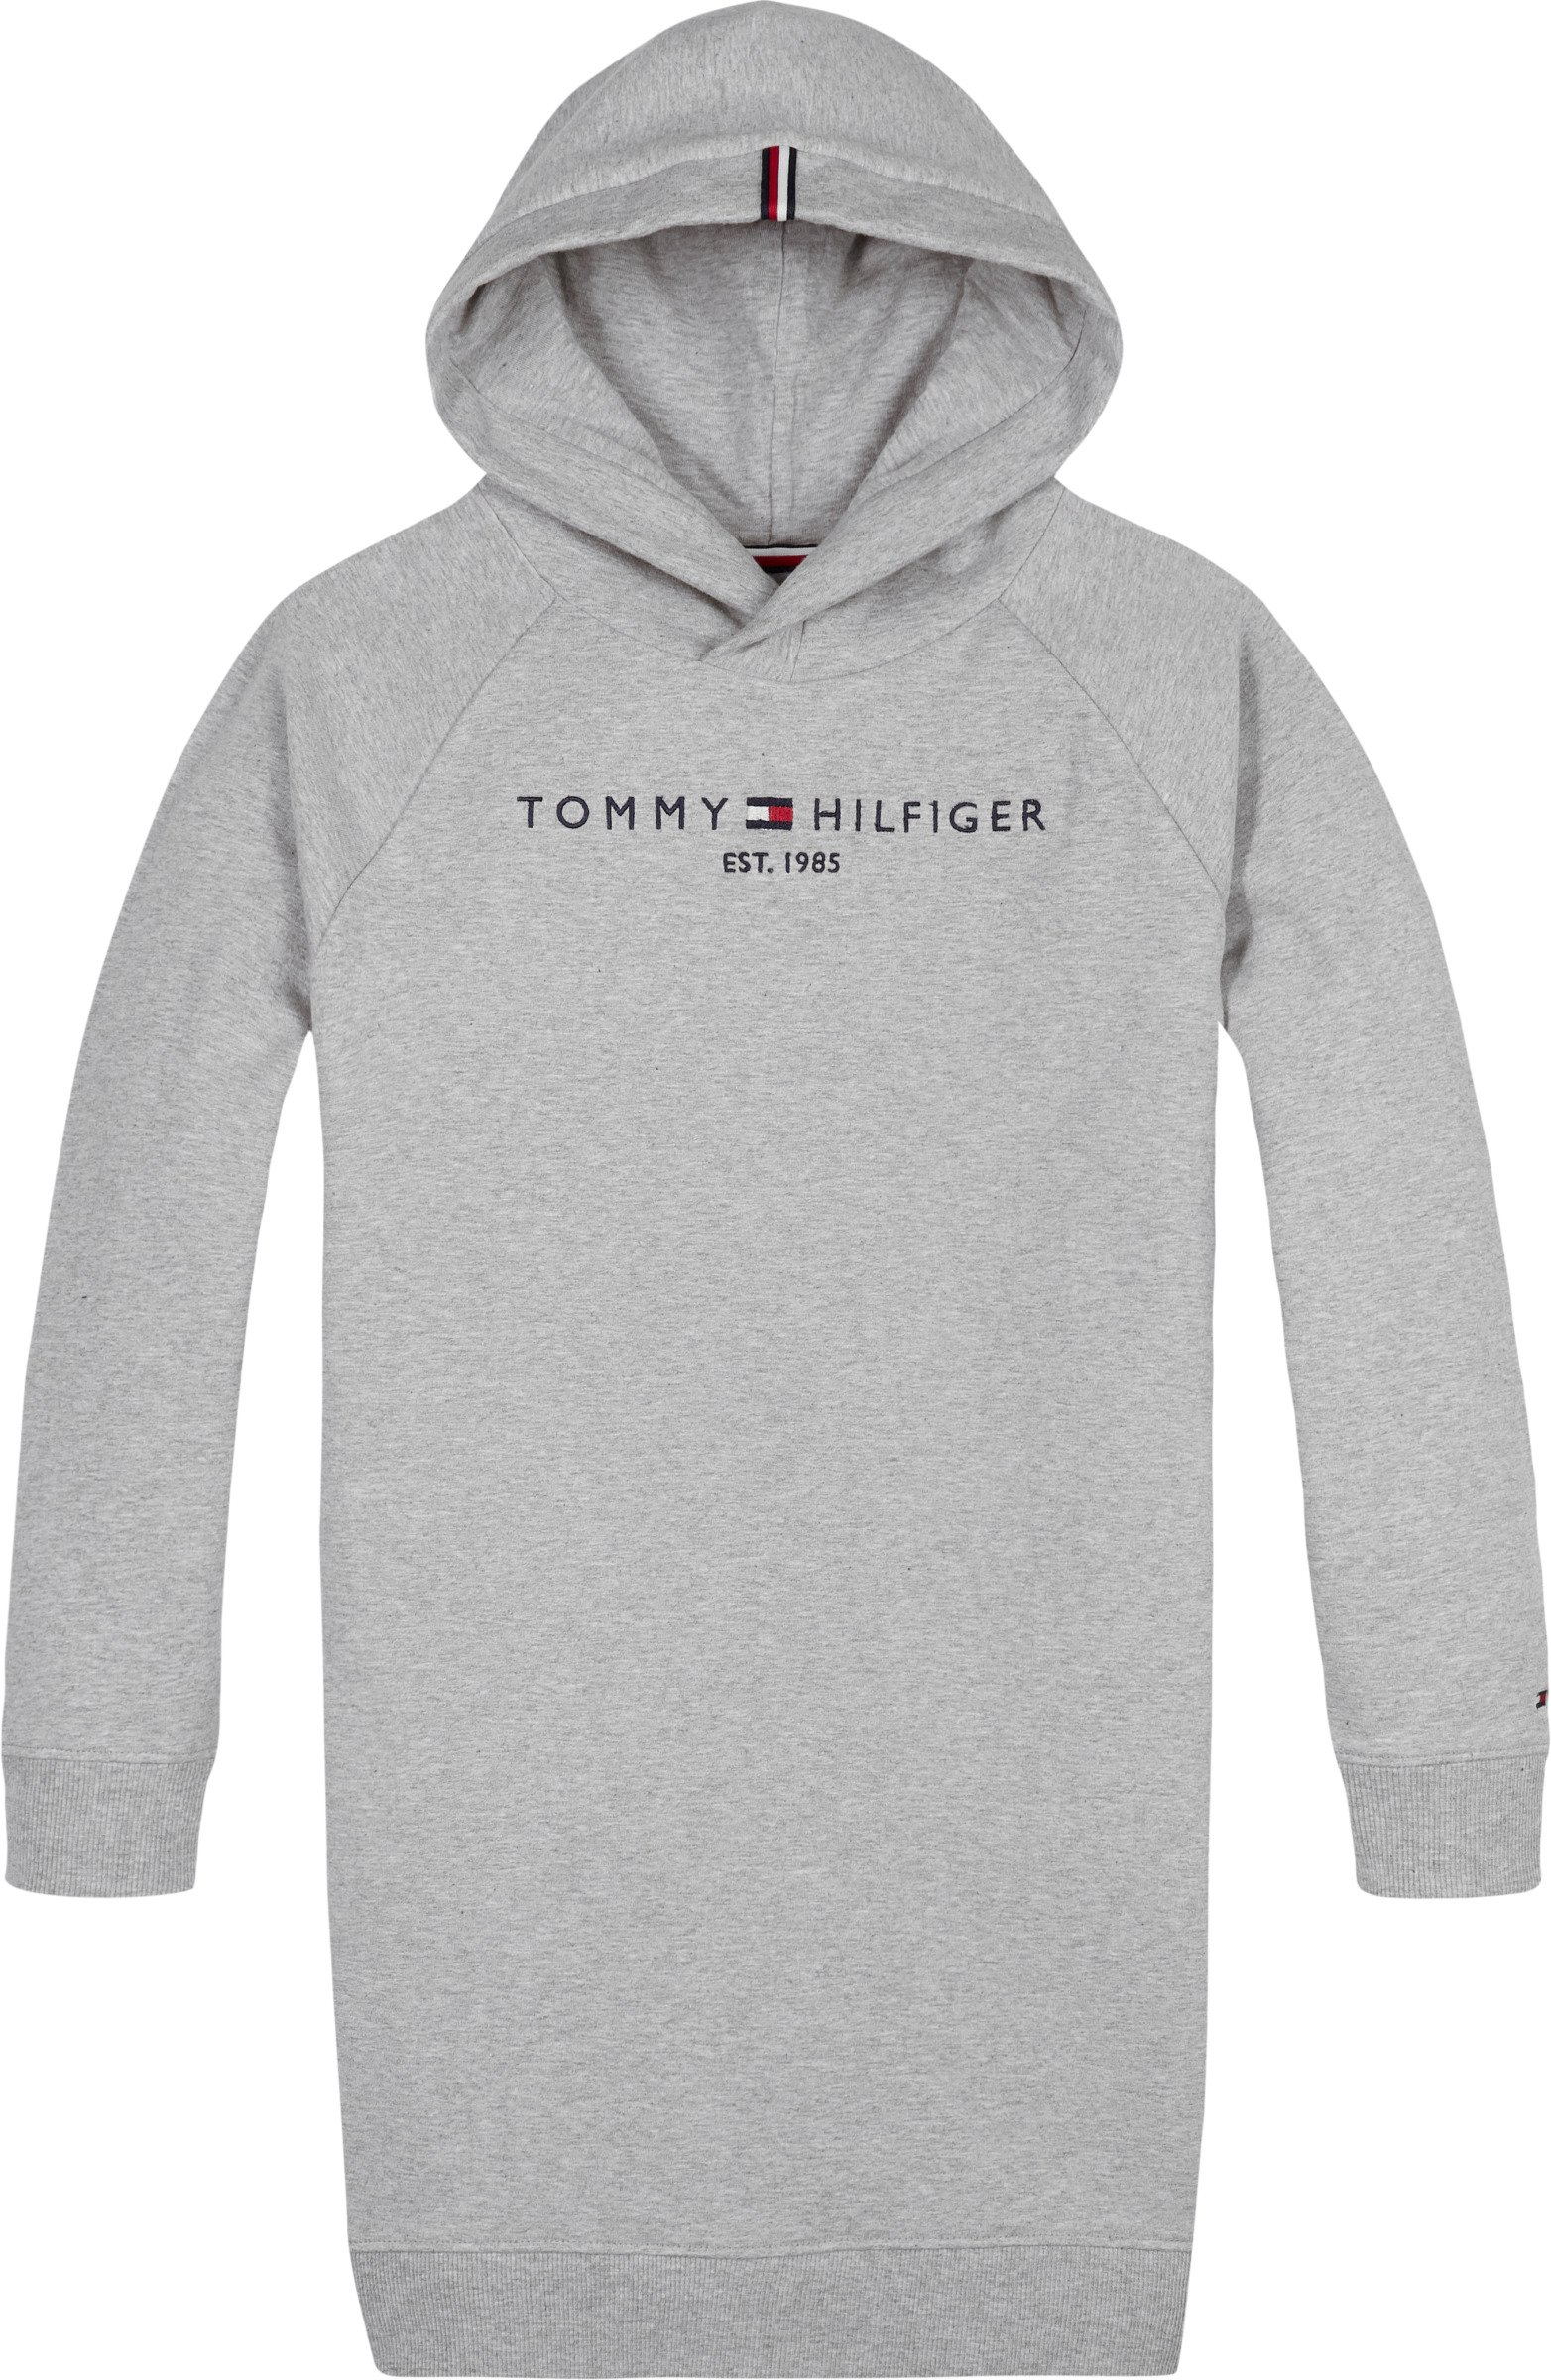 Tommy Hilfiger, essential hooded sweatdress l/s